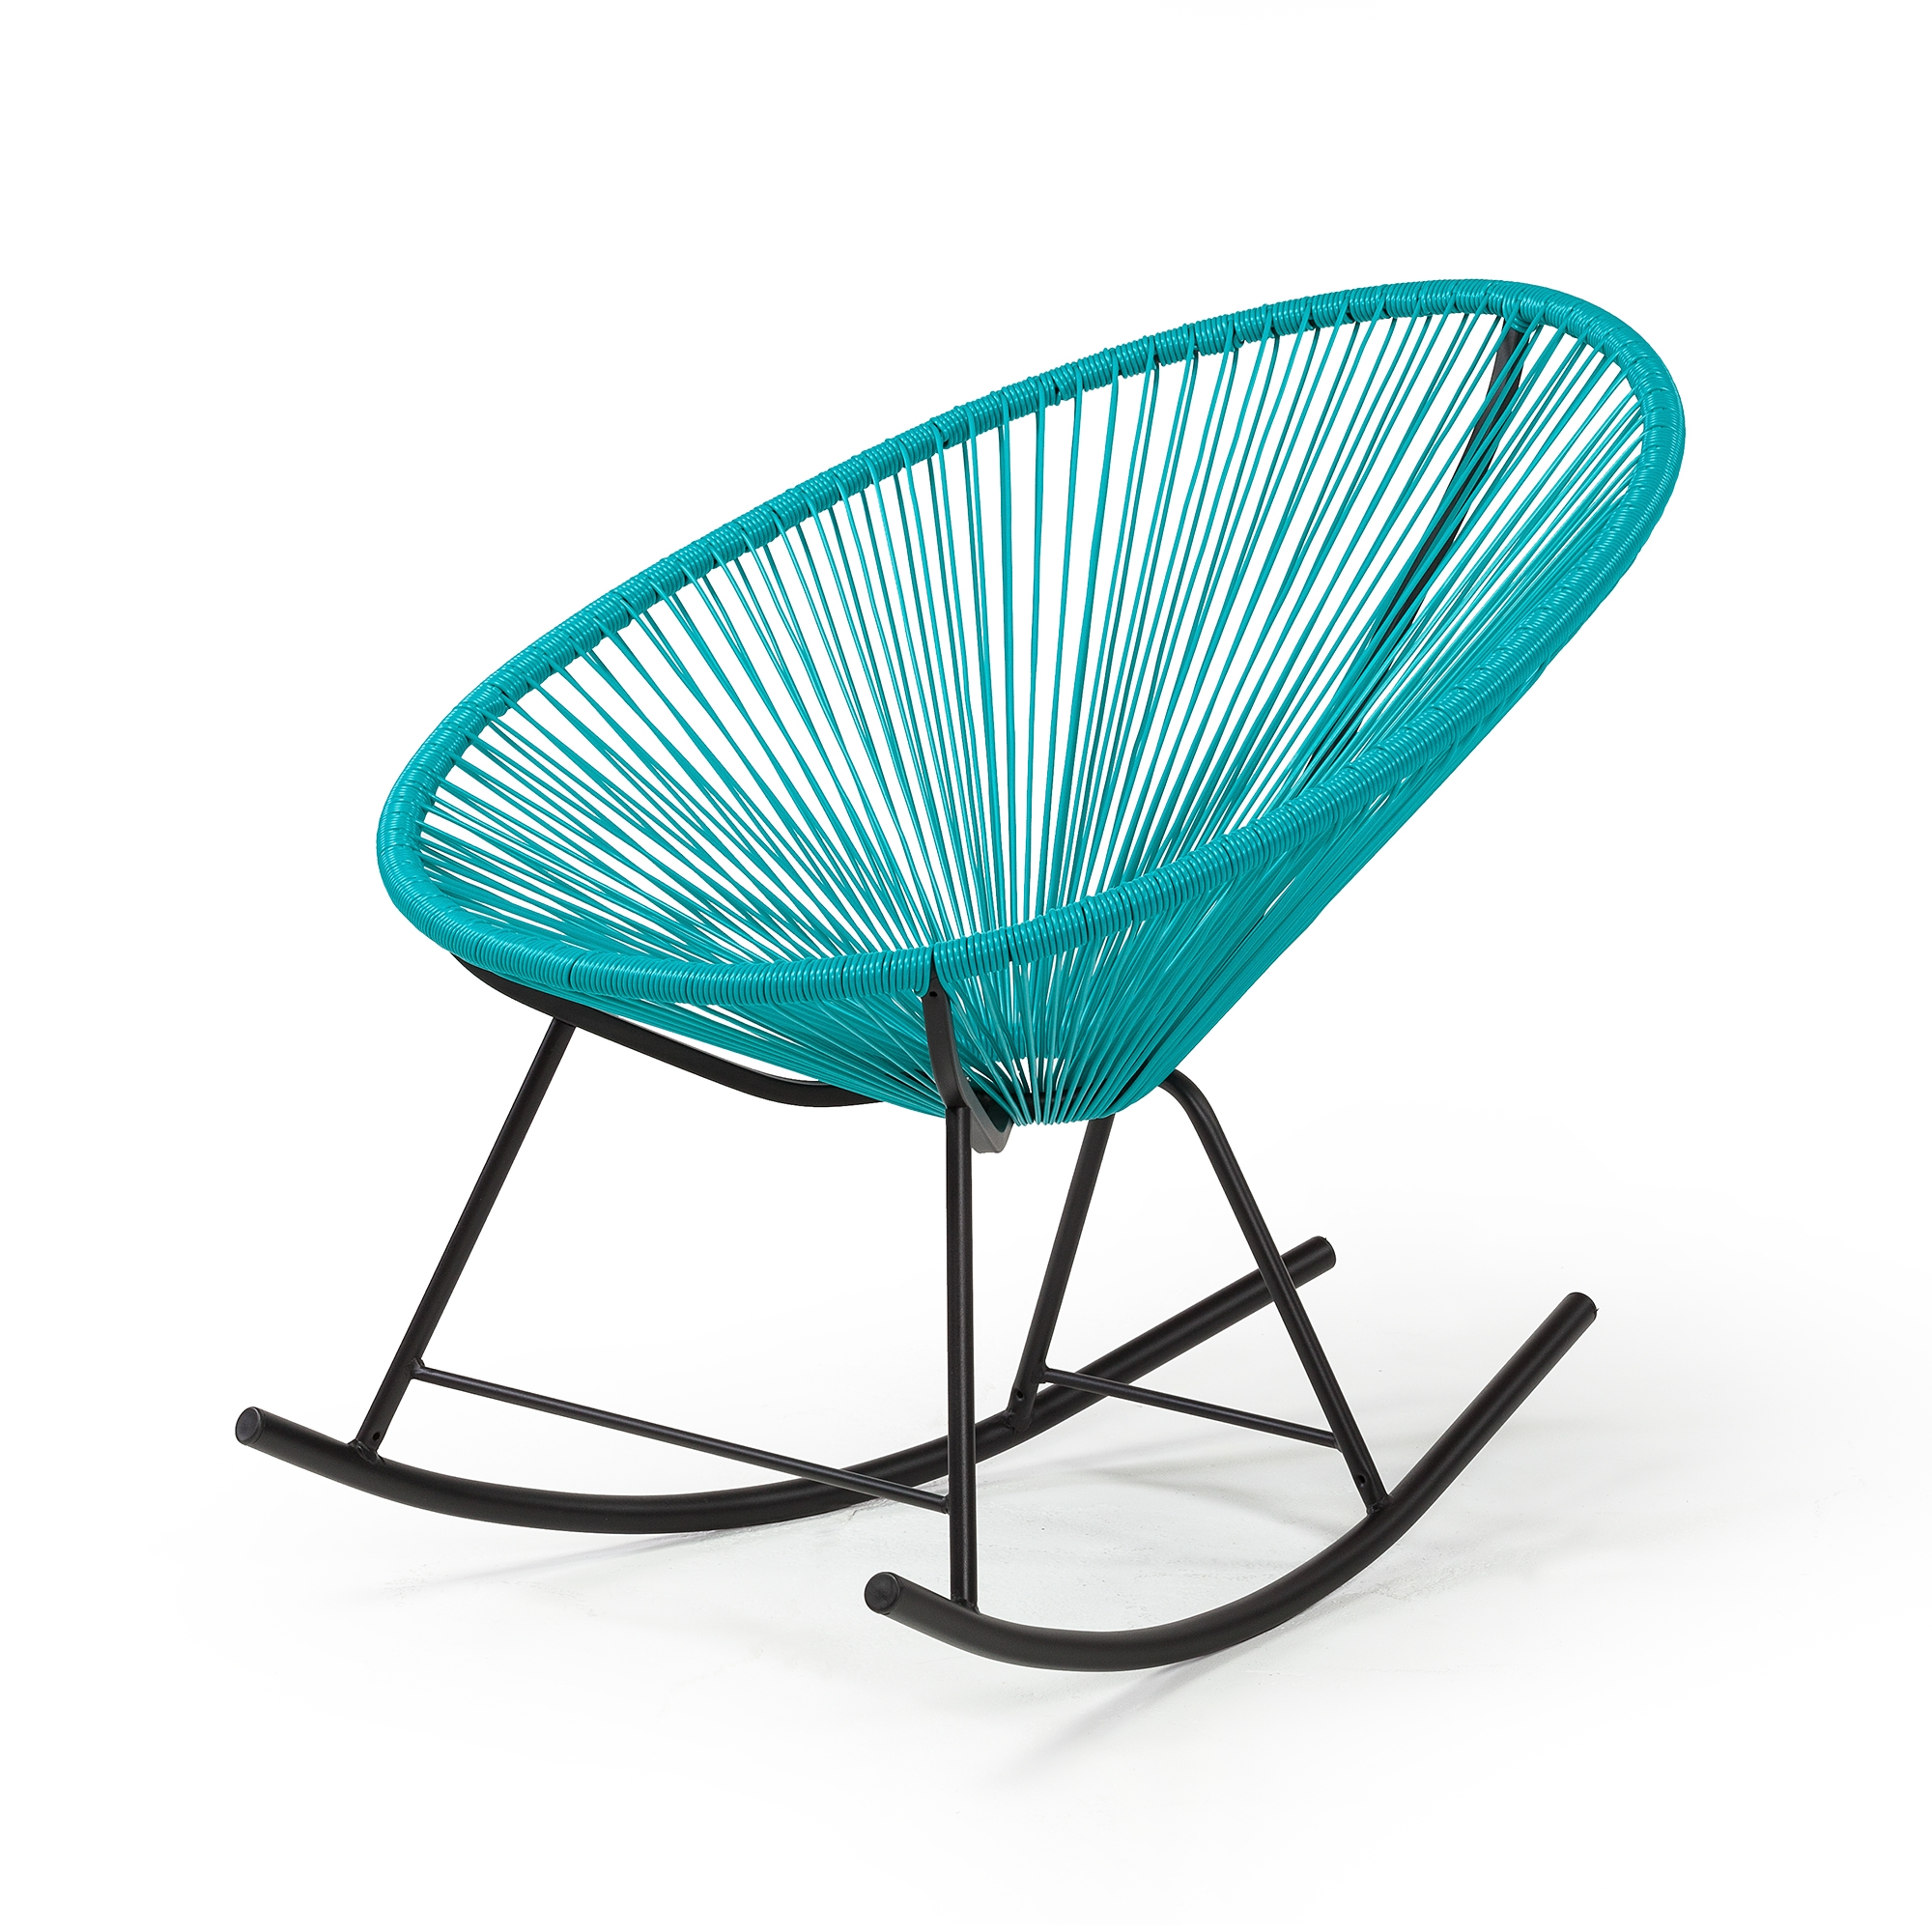 Acapulco chair outdoor - Acapulco Indoor Outdoor Rocking Chair In Blue